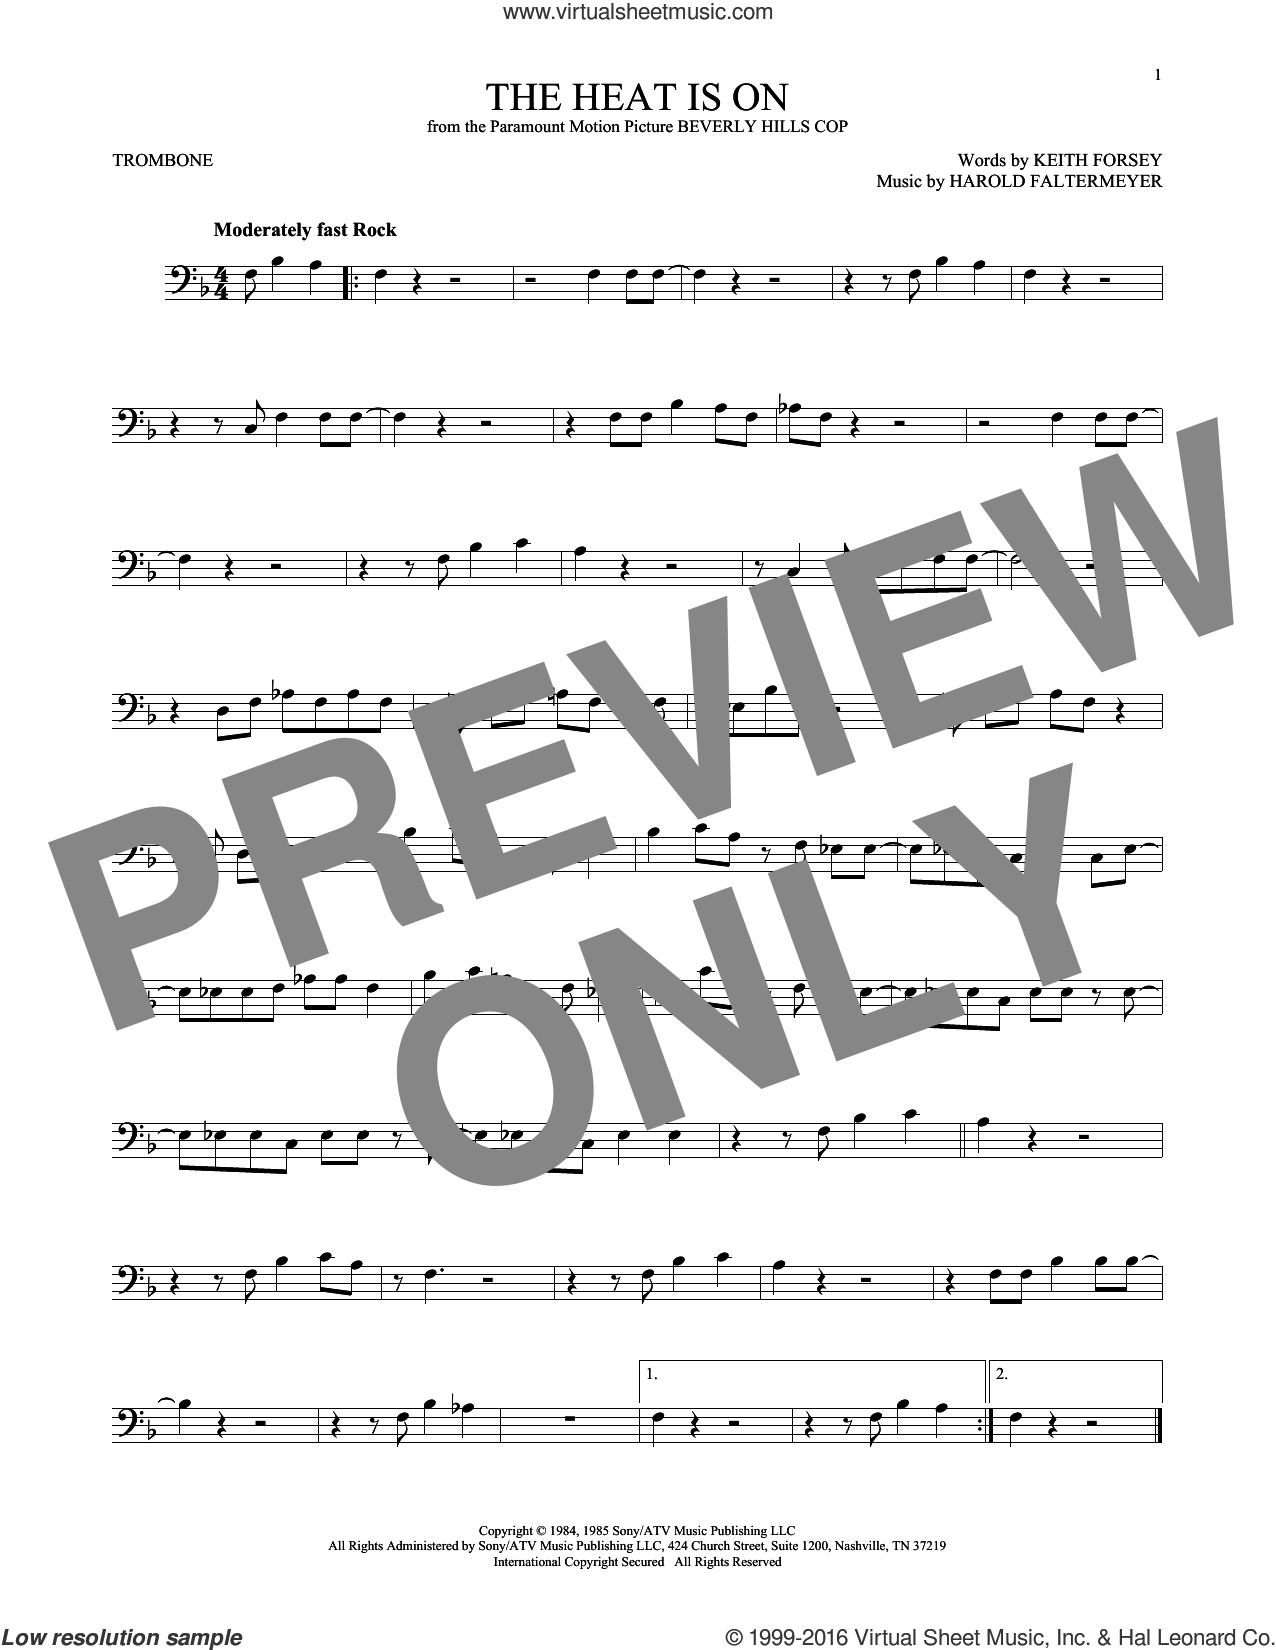 The Heat Is On sheet music for trombone solo by Glenn Frey, Harold Faltermeyer and Keith Forsey, intermediate skill level